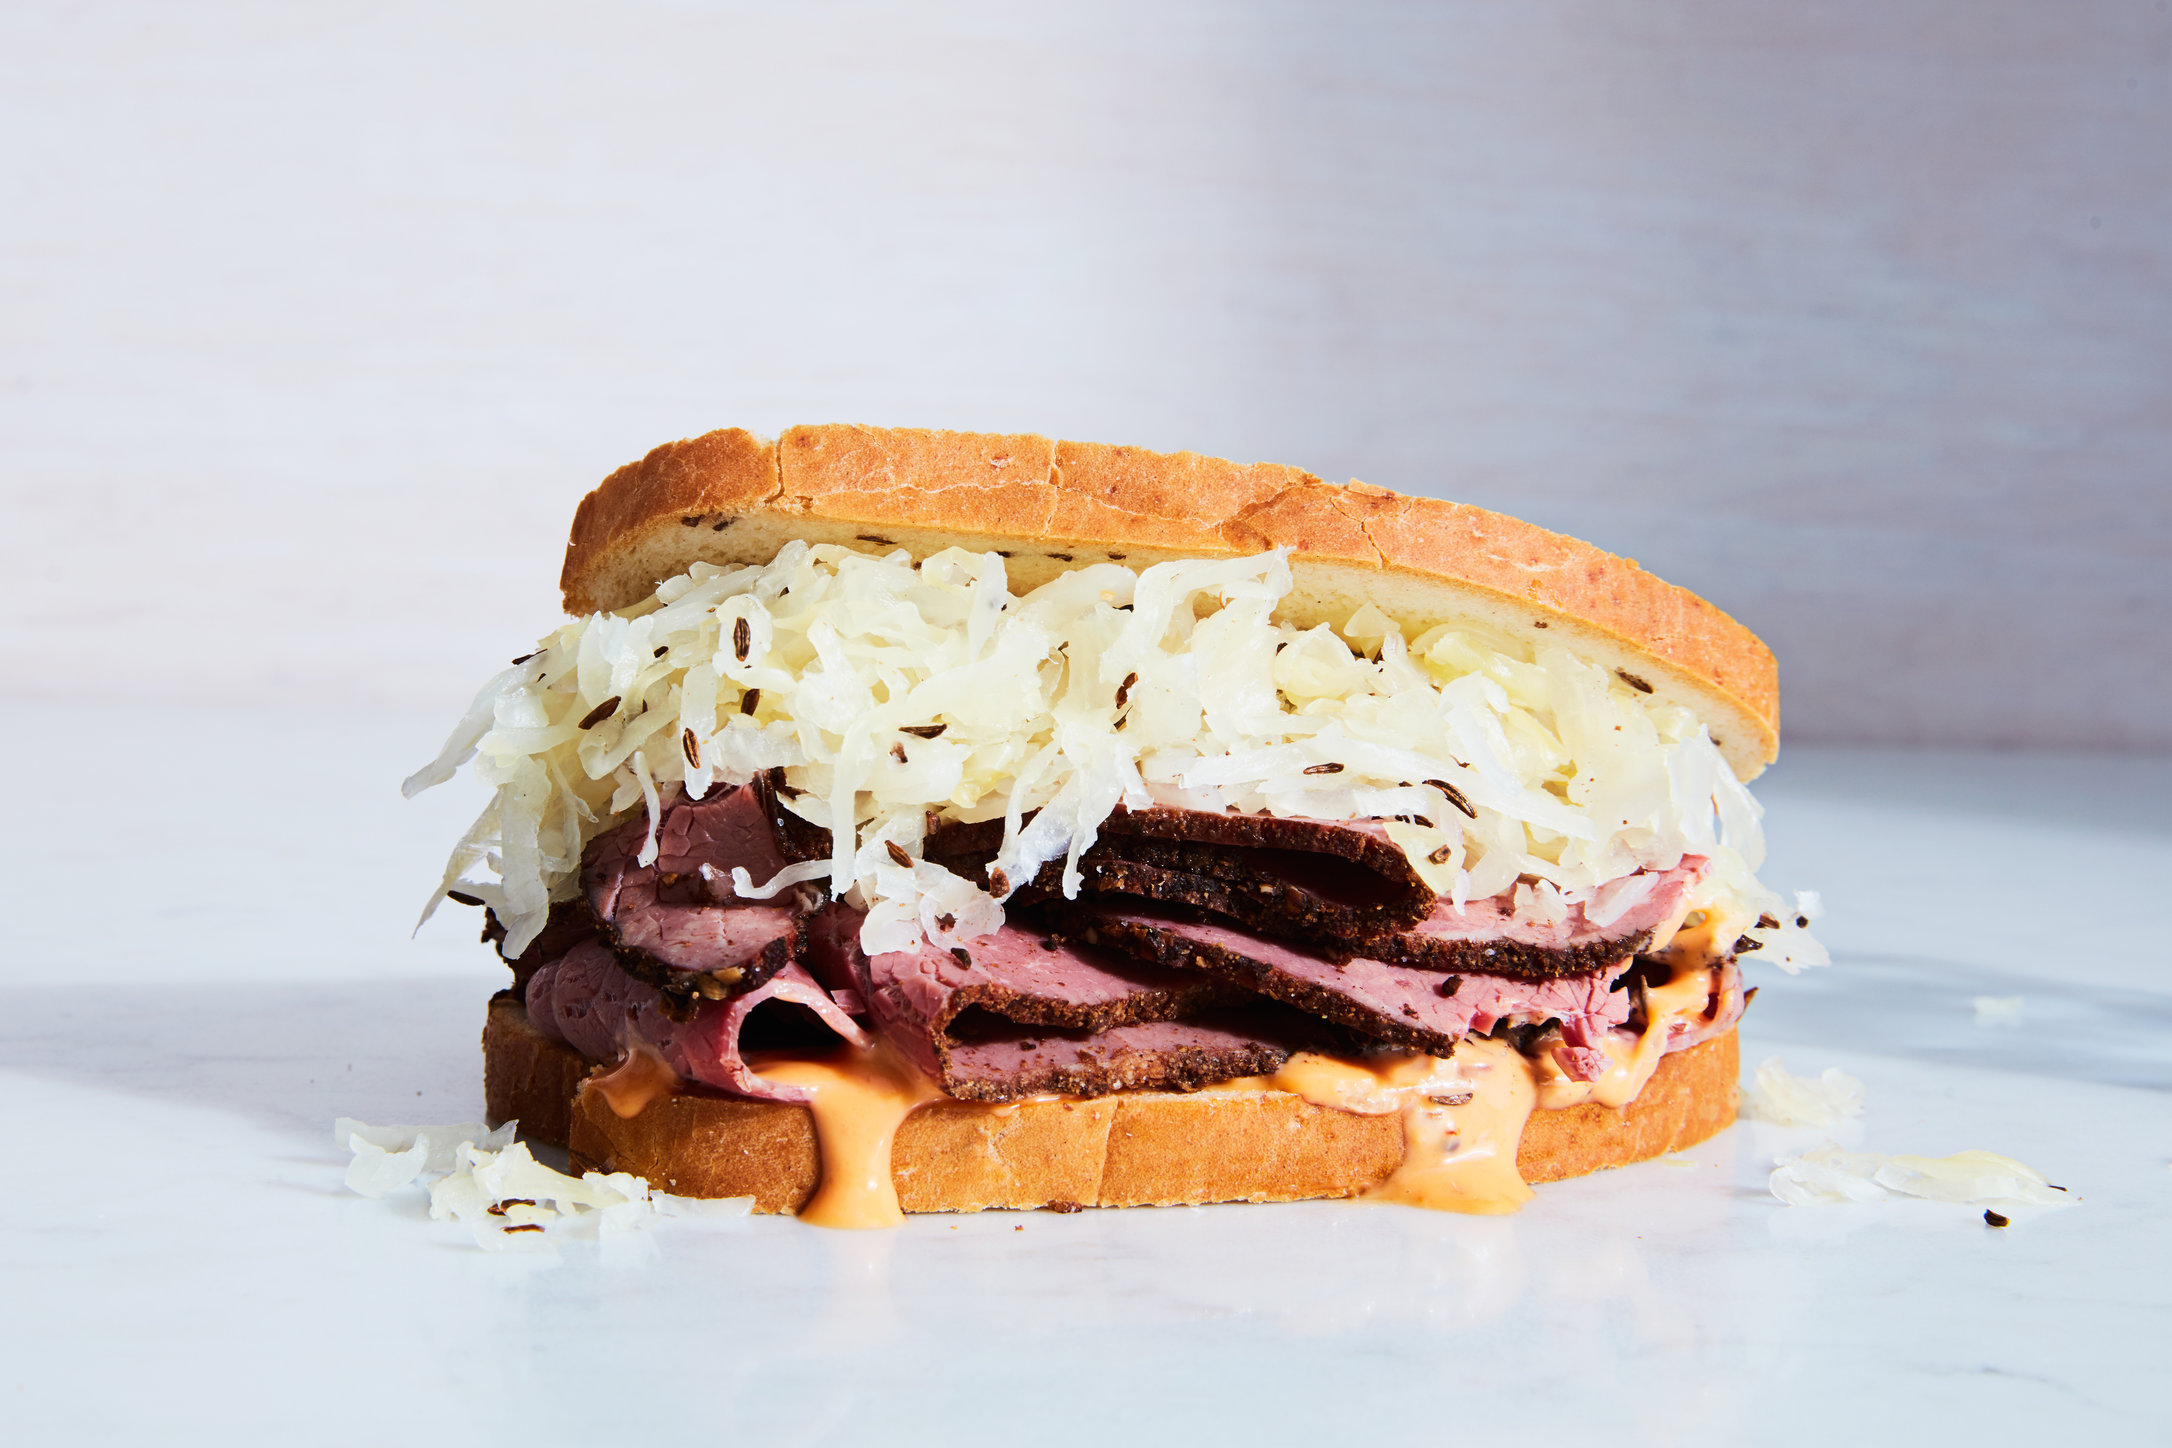 HOW-TO-MAKE-SAUERKRAUT-COMBO-REUBEN-09062017.jpg